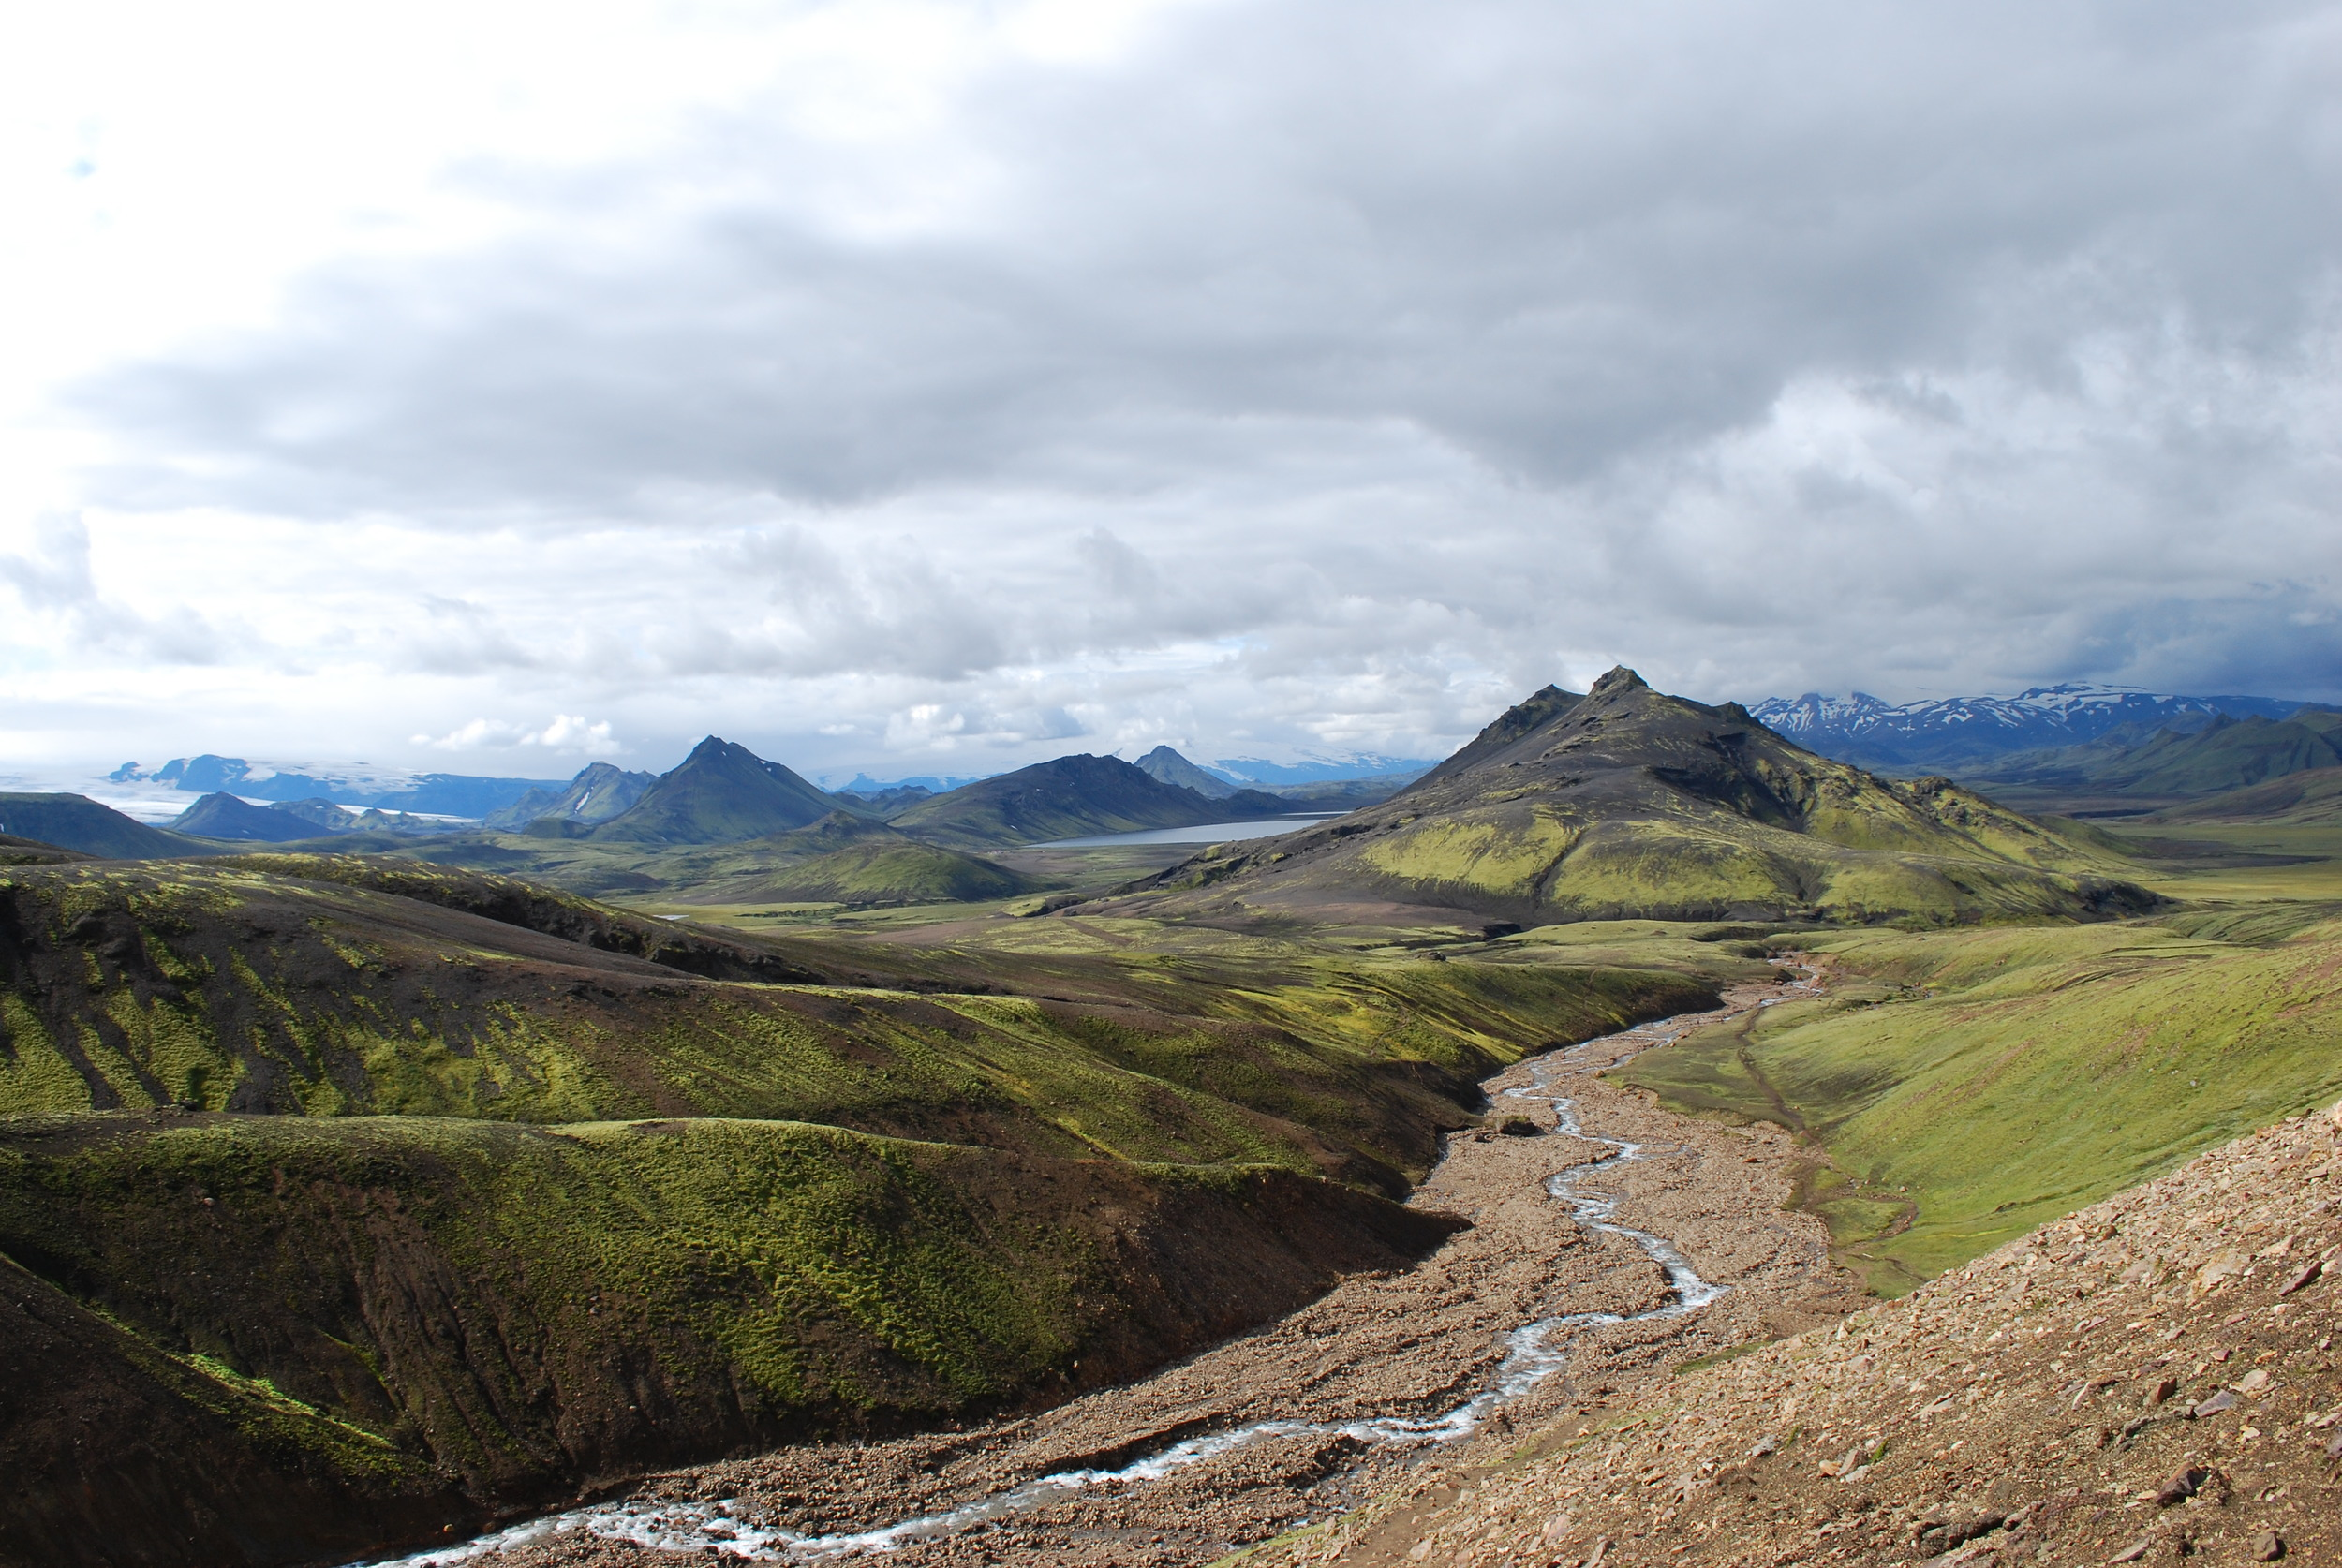 Laugavegur Trail, Photograph by Petr Brož